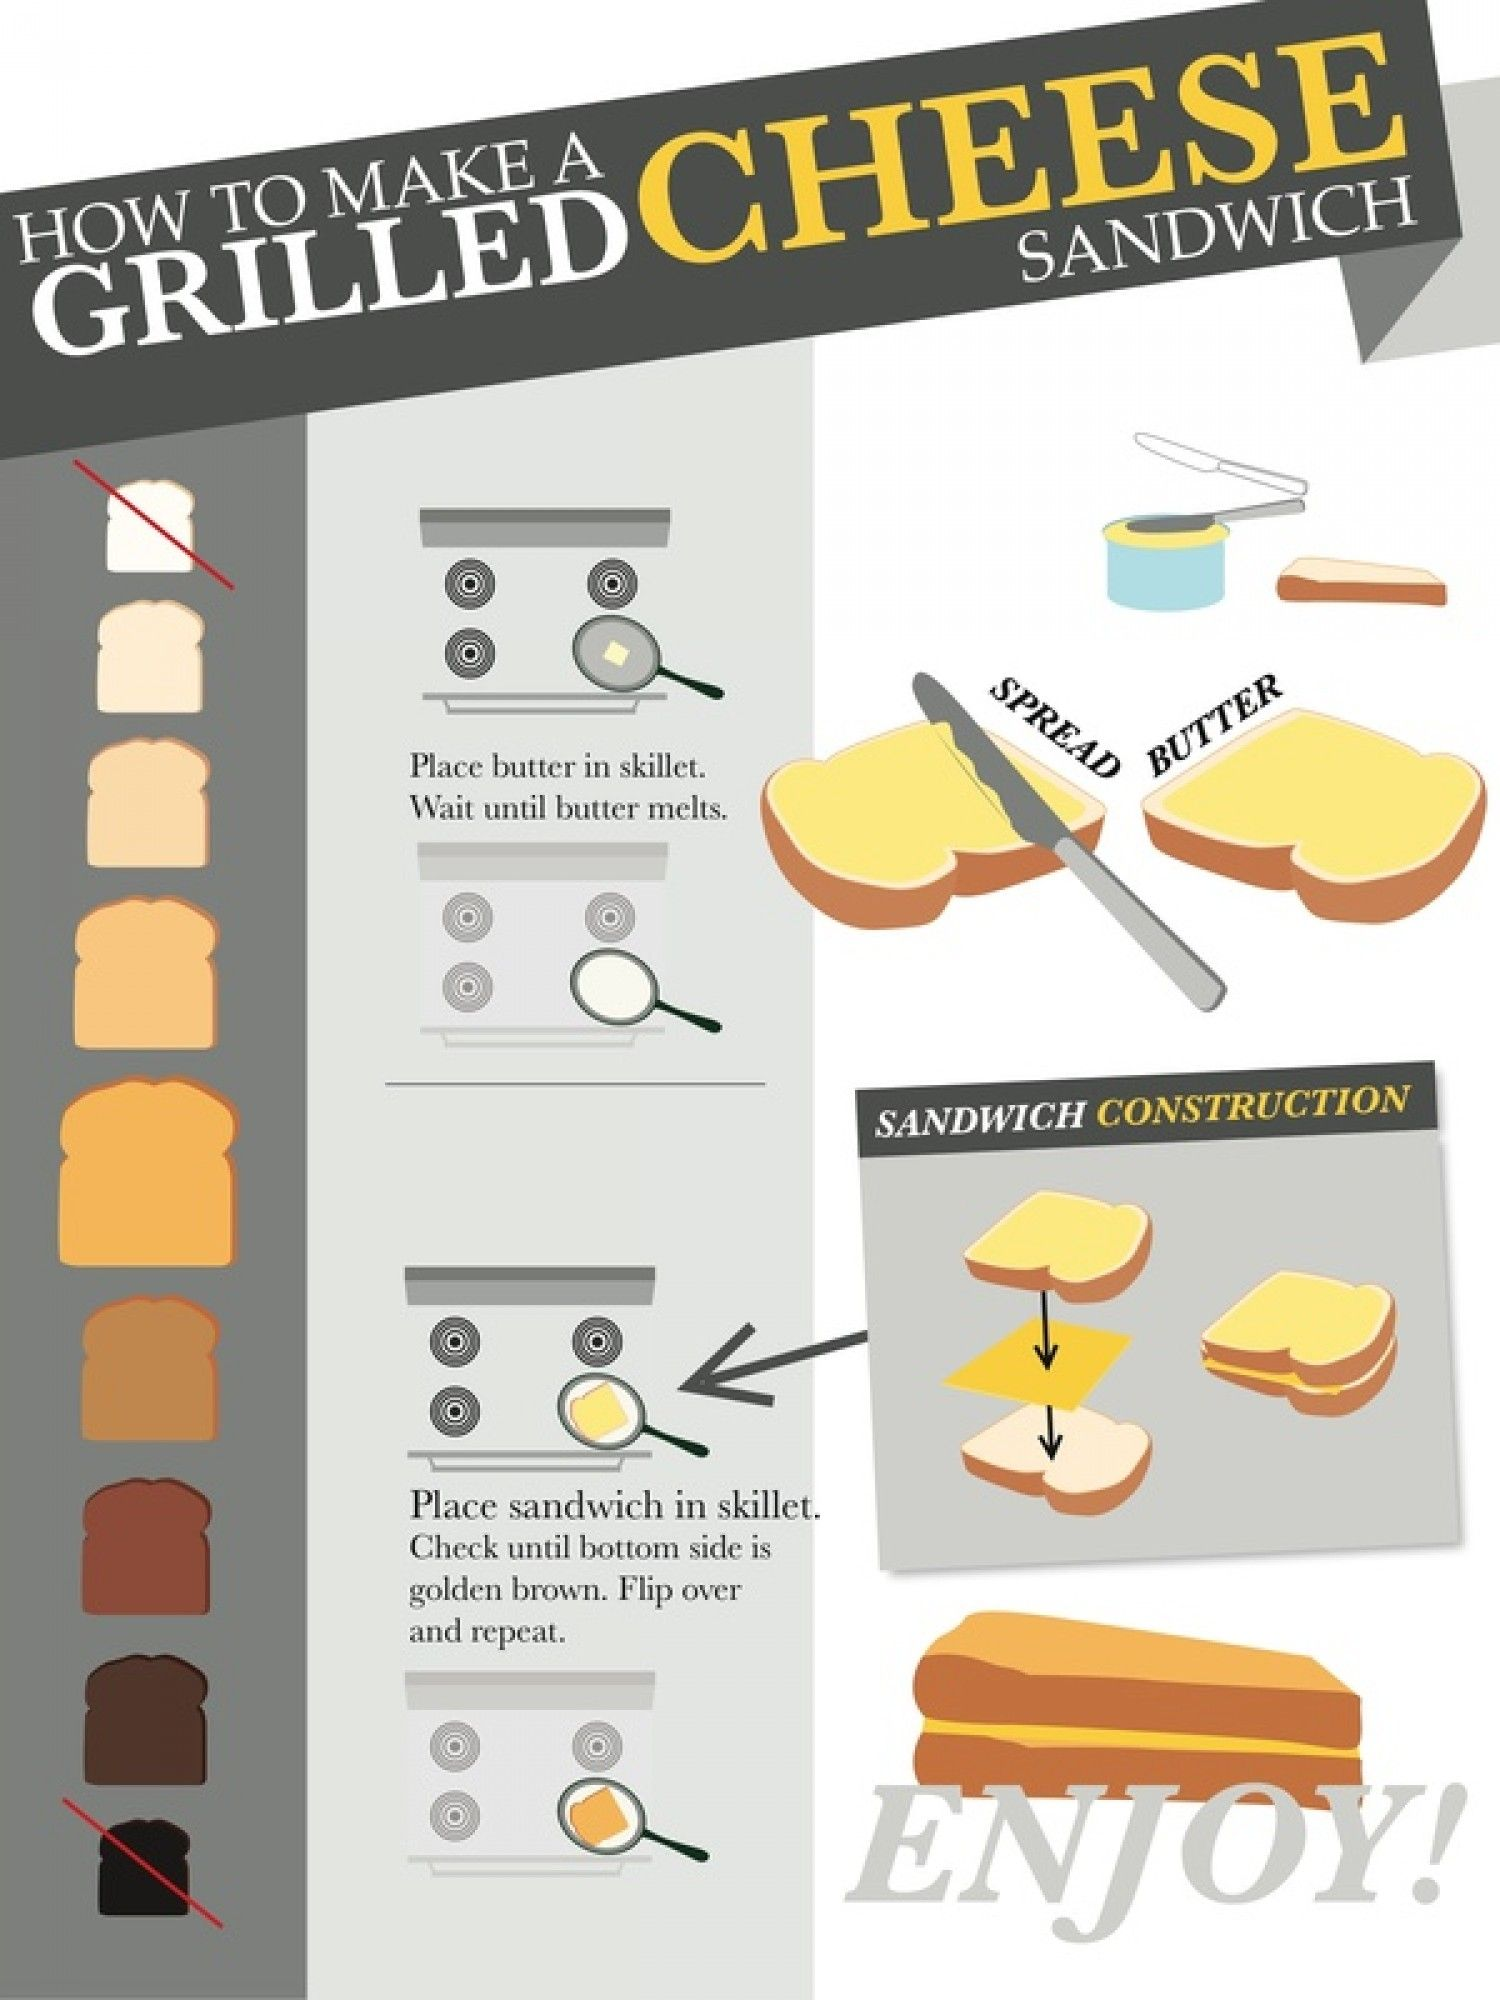 Hot Dog Making Process Infographic